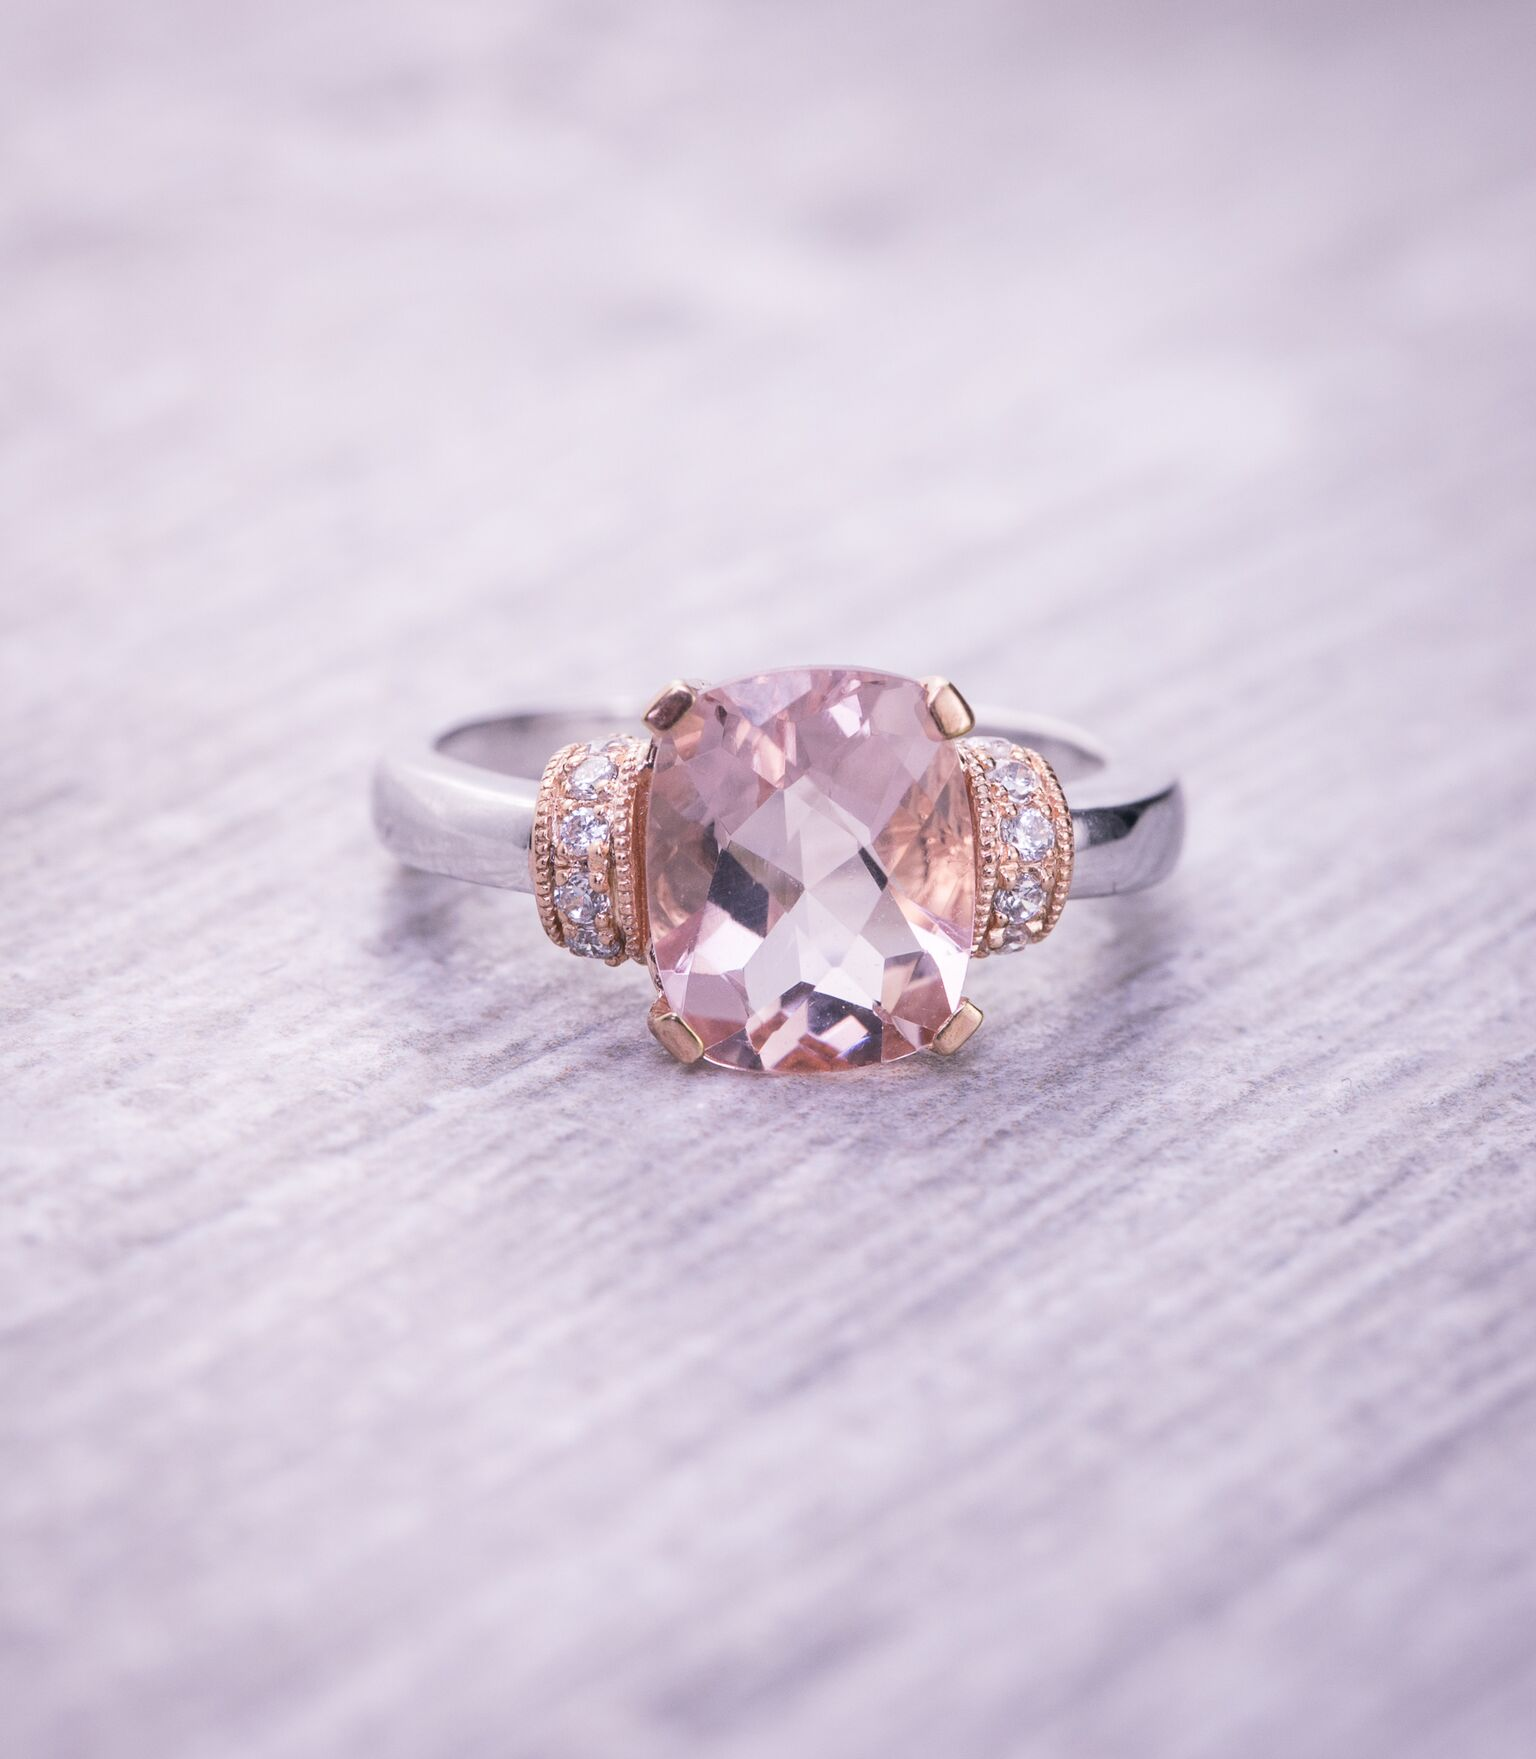 2018 Engagement Ring Trends We Are Loving